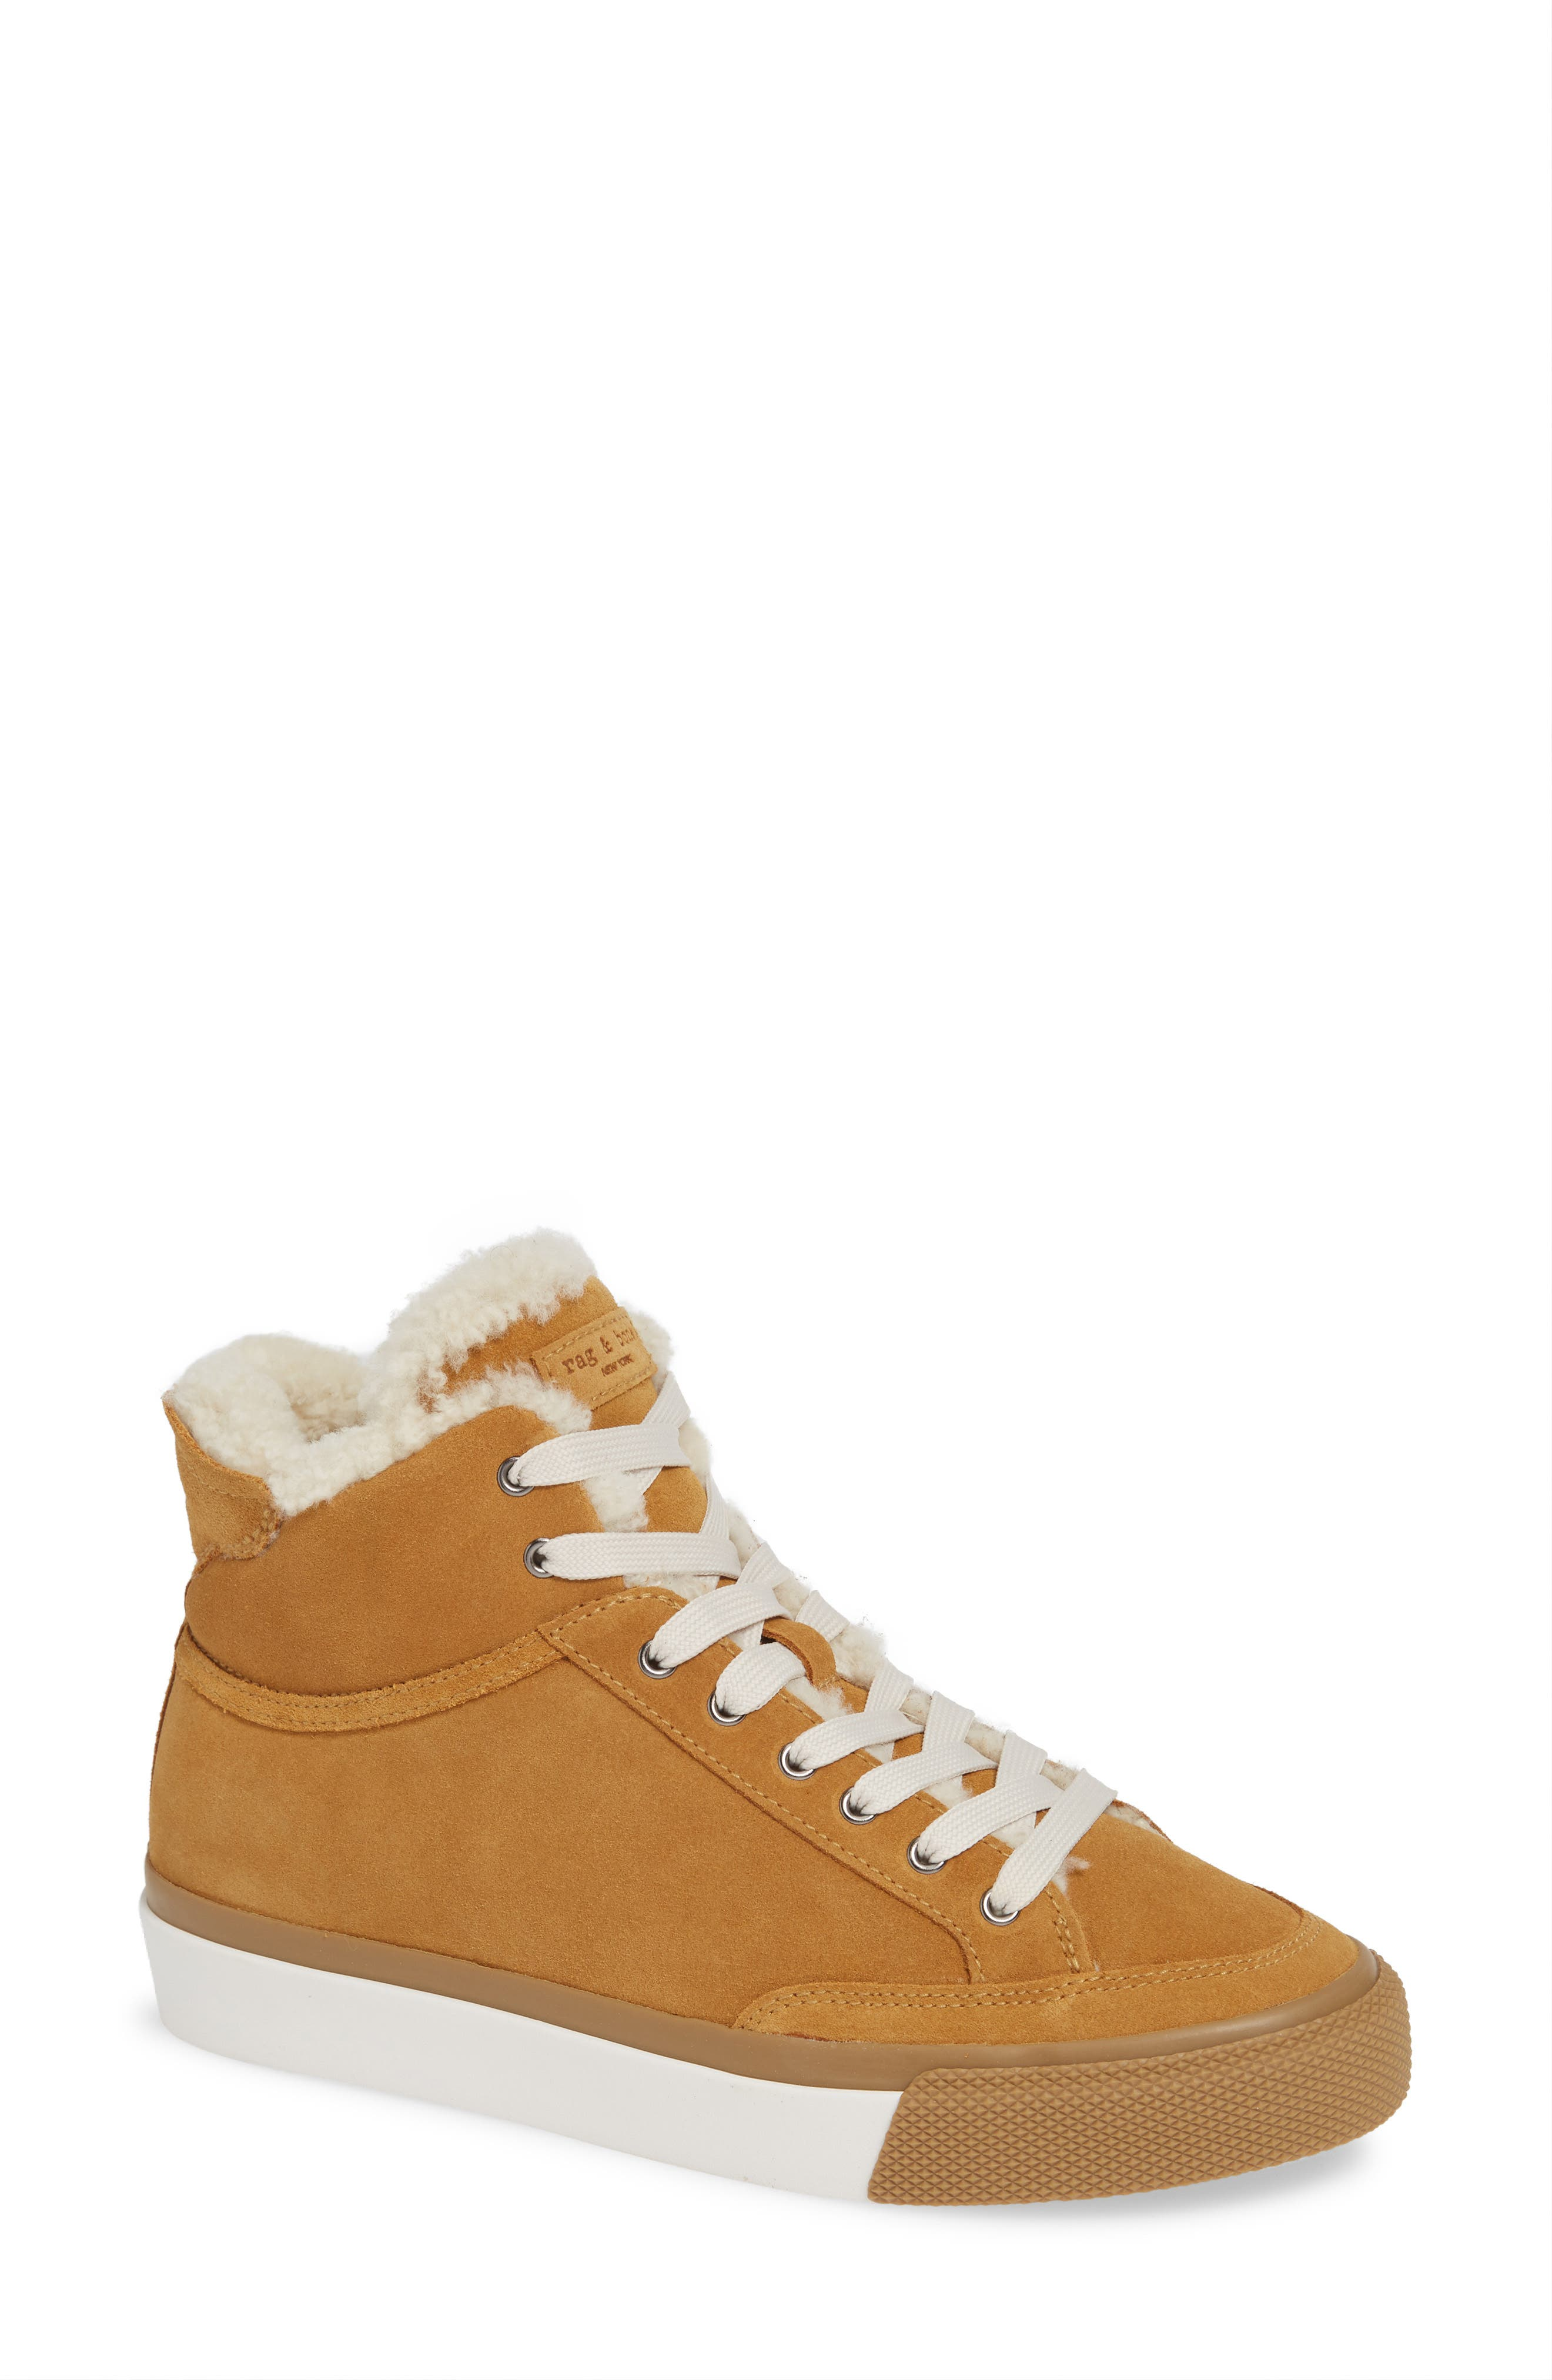 Army High Top Sneaker,                             Main thumbnail 1, color,                             OAK SUEDE